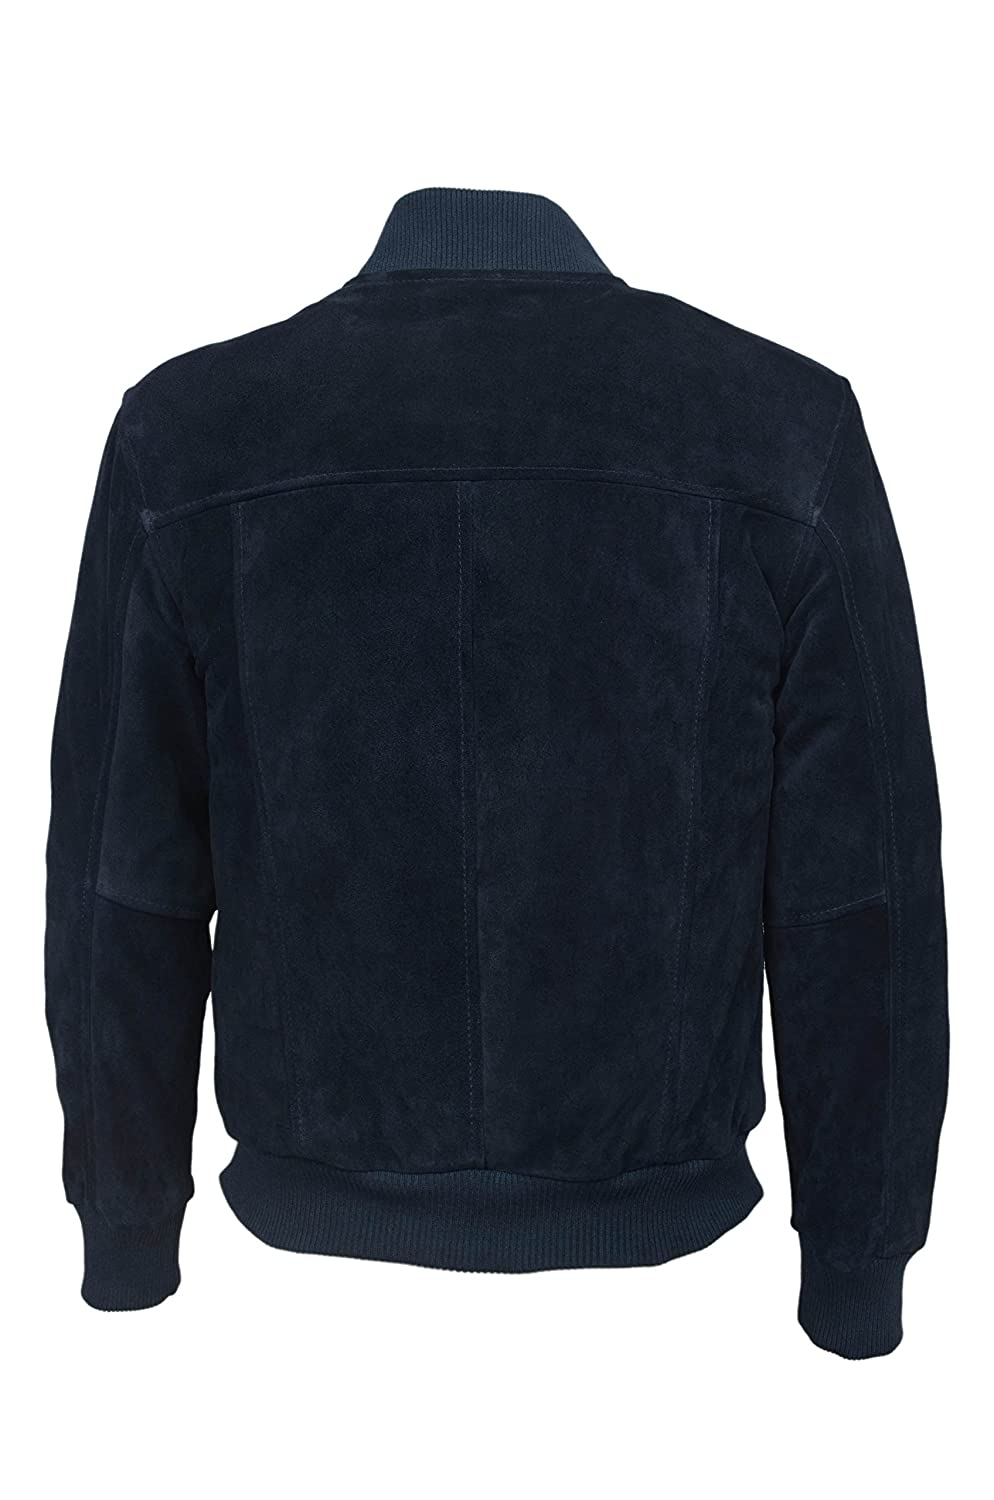 70'S RETRO BOMBER 275 Men's Navy SUEDE Cool Classic Soft Italian Leather Jacket